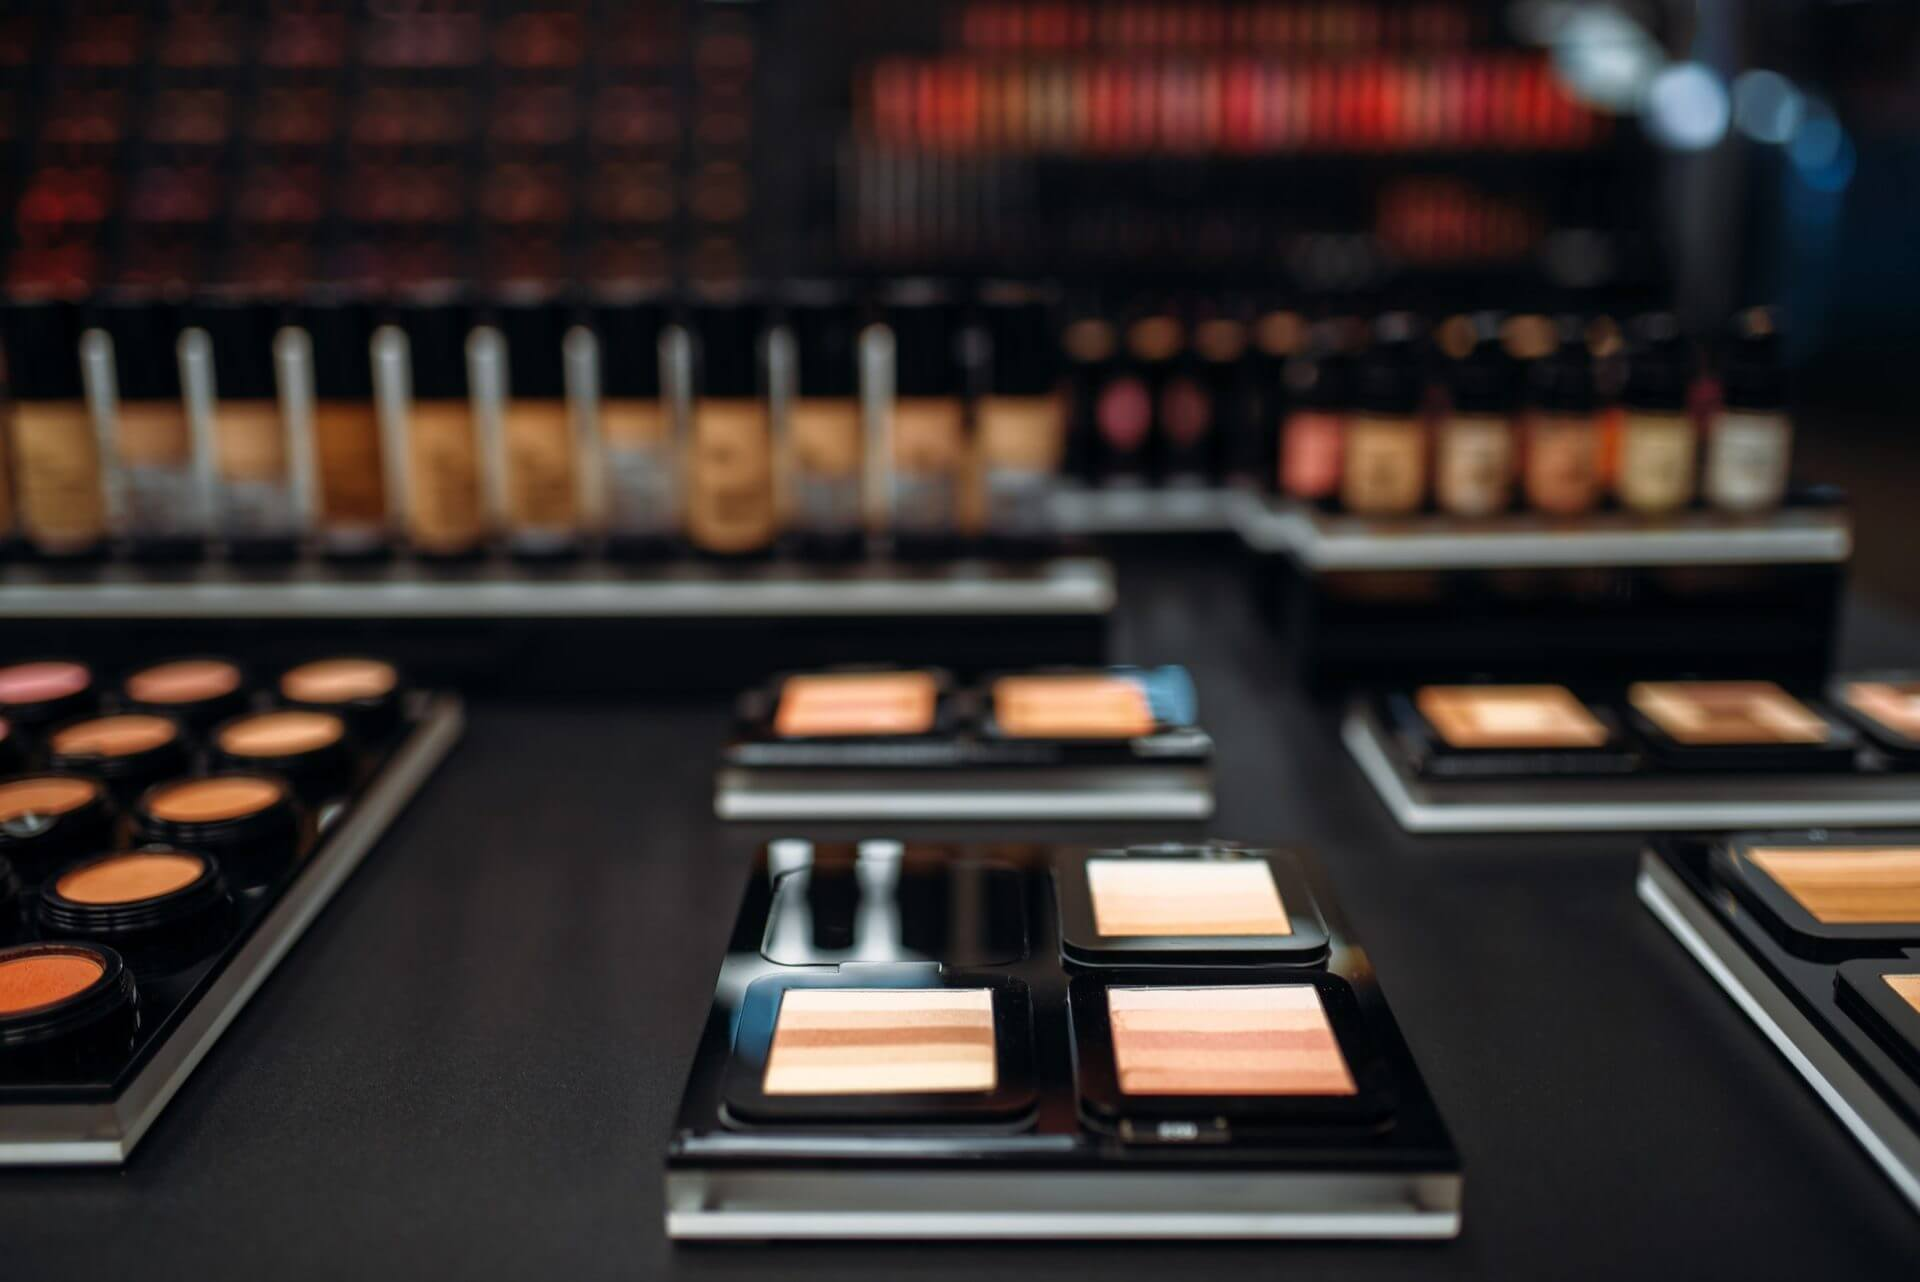 powders-collection-showcase-in-make-up-shop.jpg